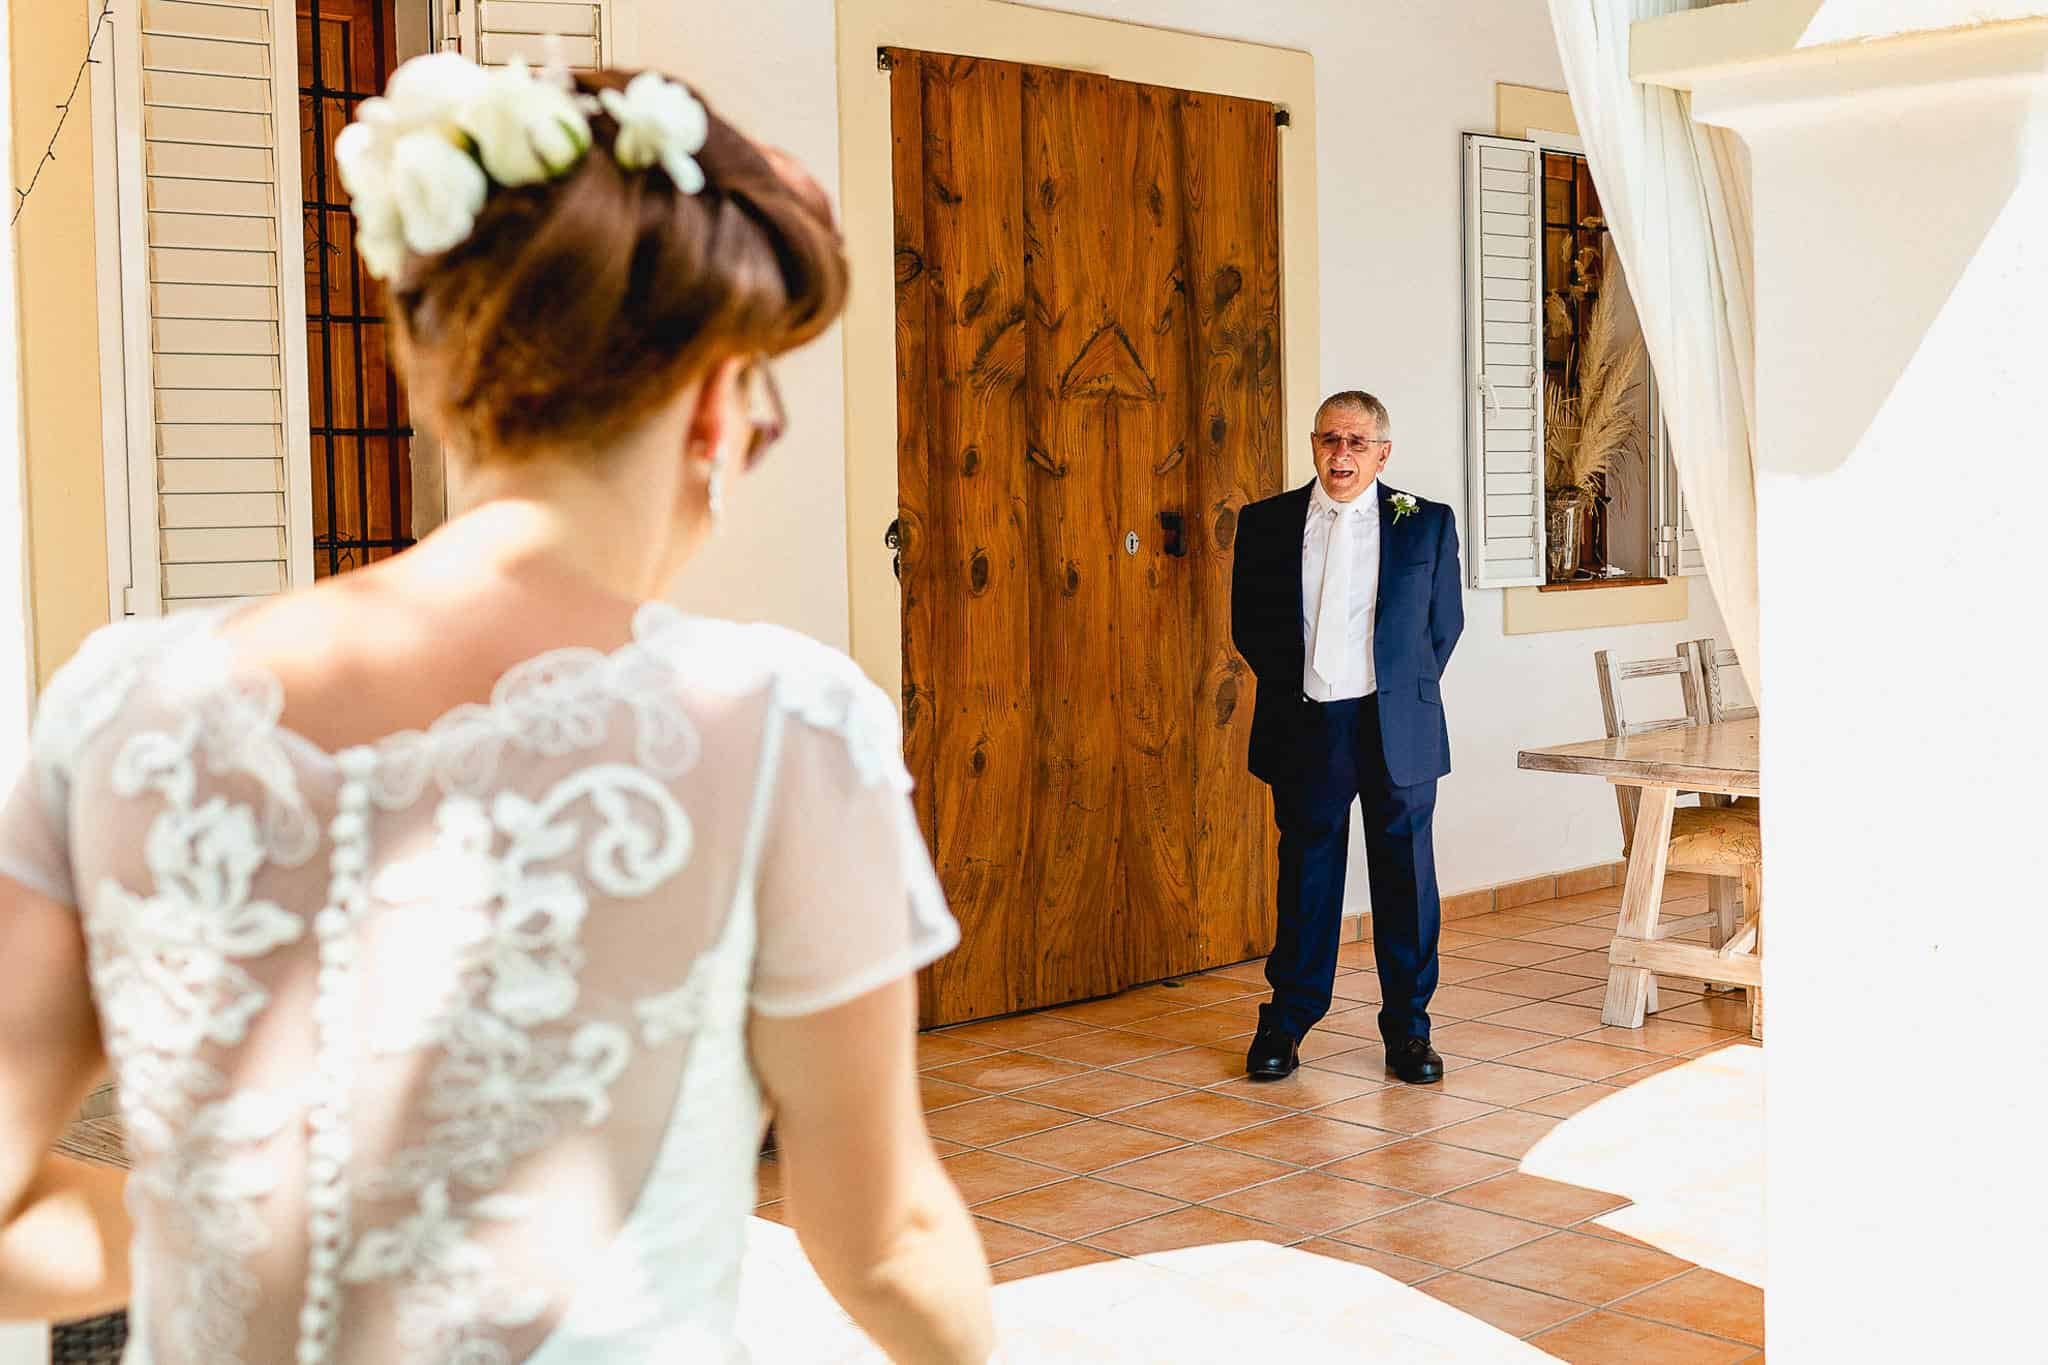 CD_WEDDING_0089